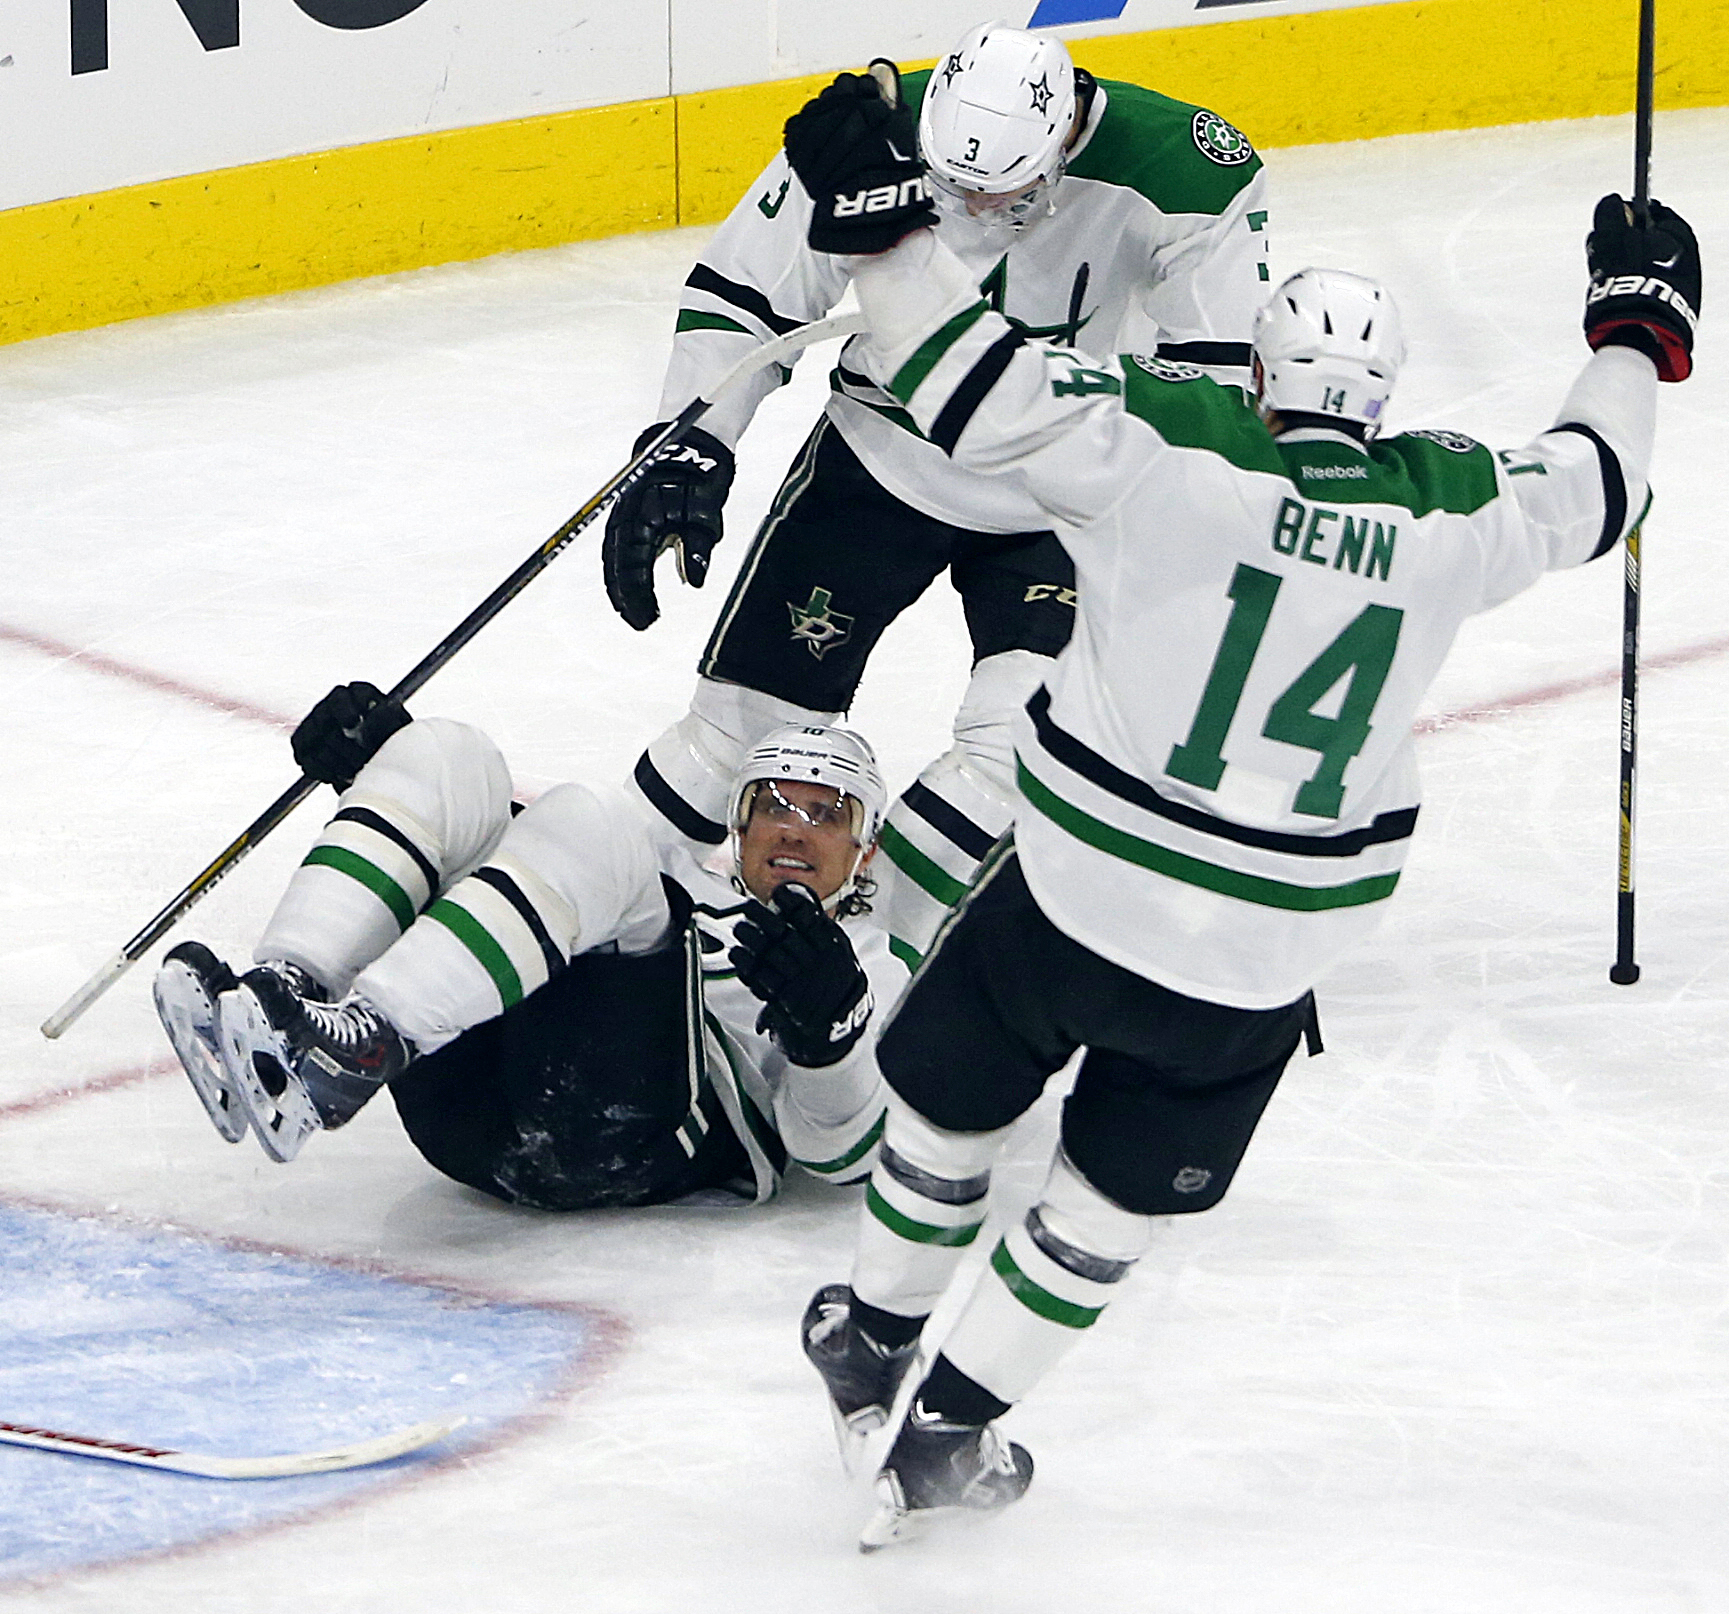 Dallas Stars' Patrick Sharp, on his back on the ice, celebrates his go-ahead goal with teammates Jamie Benn (14) and John Klingberg (3) during the third period of an NHL hockey game against the Carolina Hurricanes, Friday, Nov. 6, 2015, in Raleigh, N.C. D